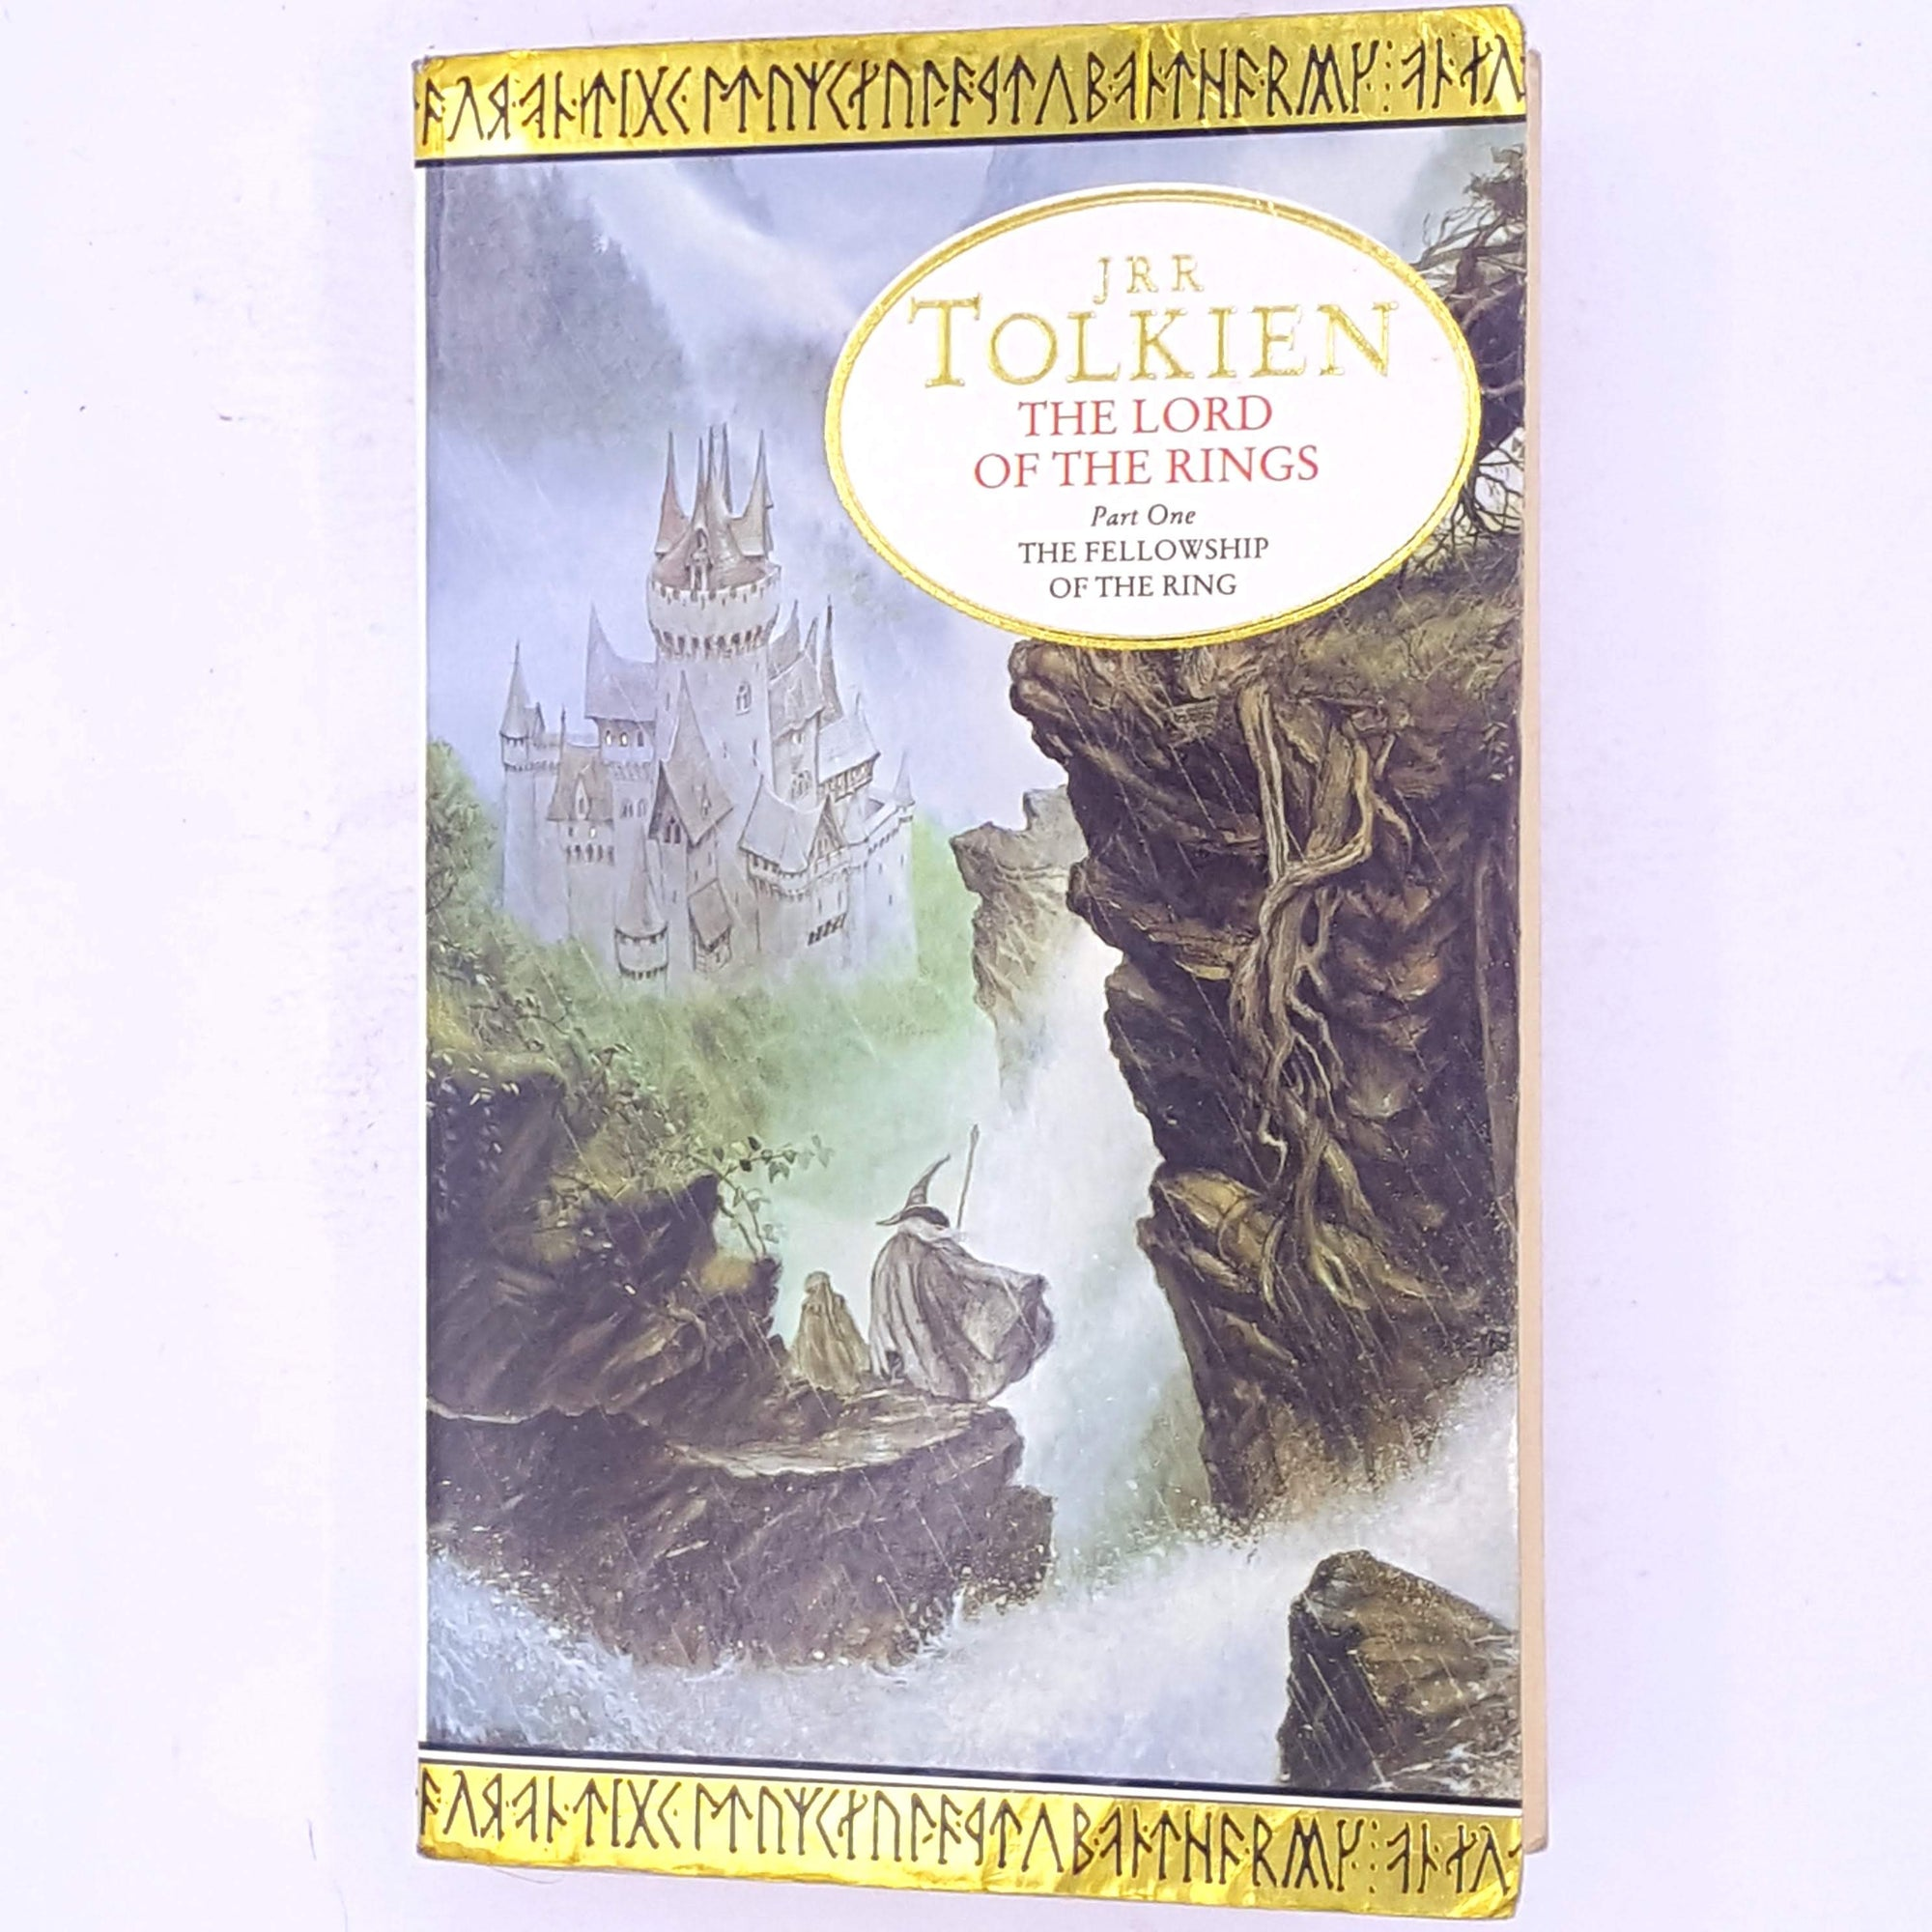 antique-patterned-thrift-dwarves-dwarf-dragons-smaug-fantasy-mystical-mythical-magic-science-fiction- classic-the-fellowship-of-the-ring- old-country-house-library-decorative-books-J.R.R.-Tolkien-the-lord-of-the-rings-elves-hobbits-the-ring-one-ring-to-rule-them-all-vintage-